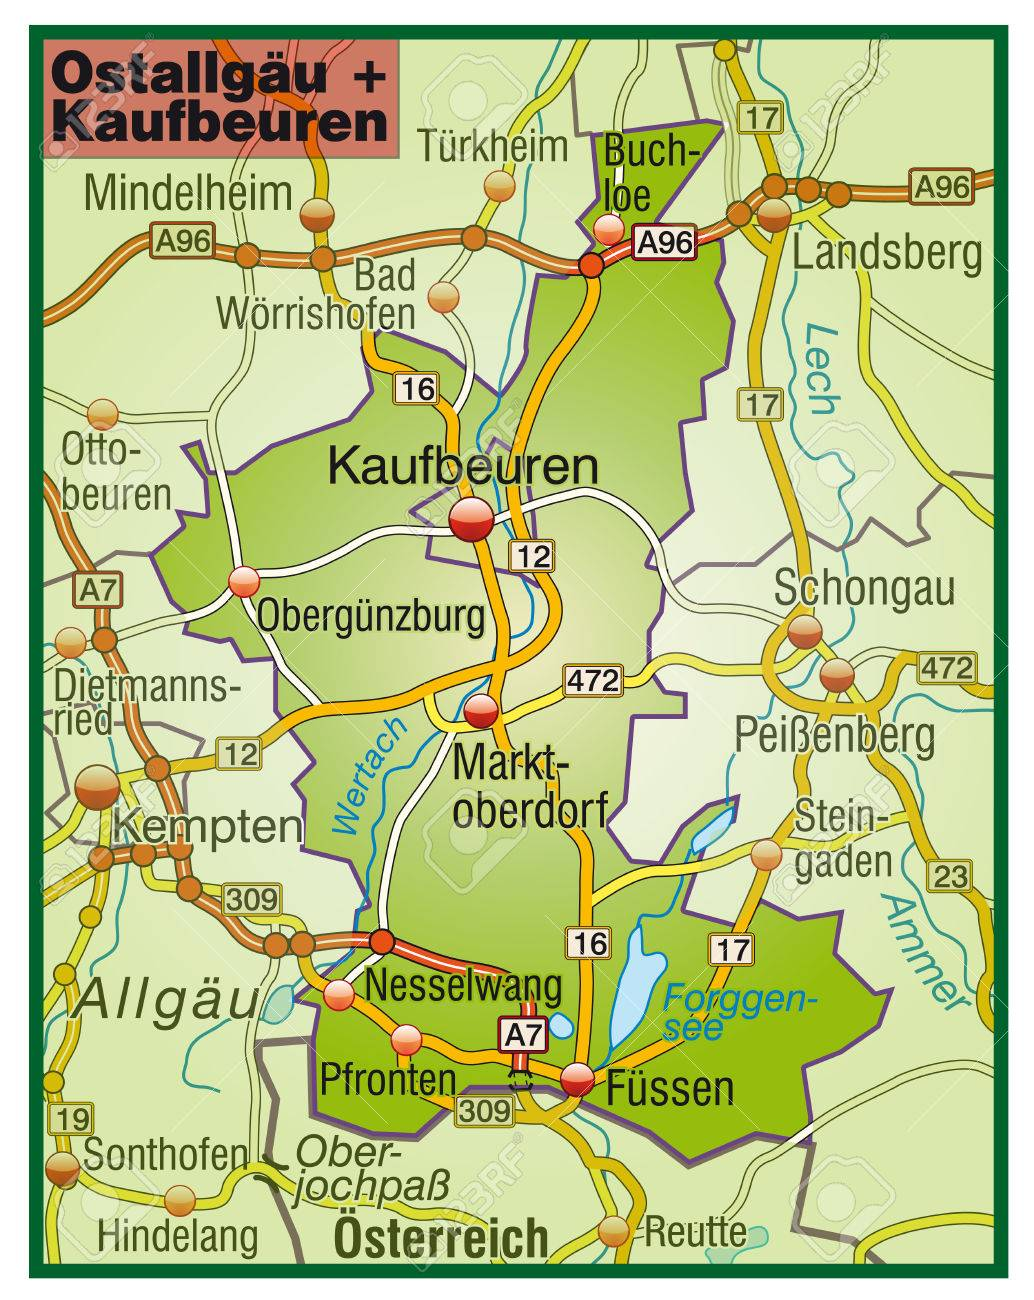 Map Of Ostallgaeu Kaufbeuren With Highways Royalty Free Cliparts